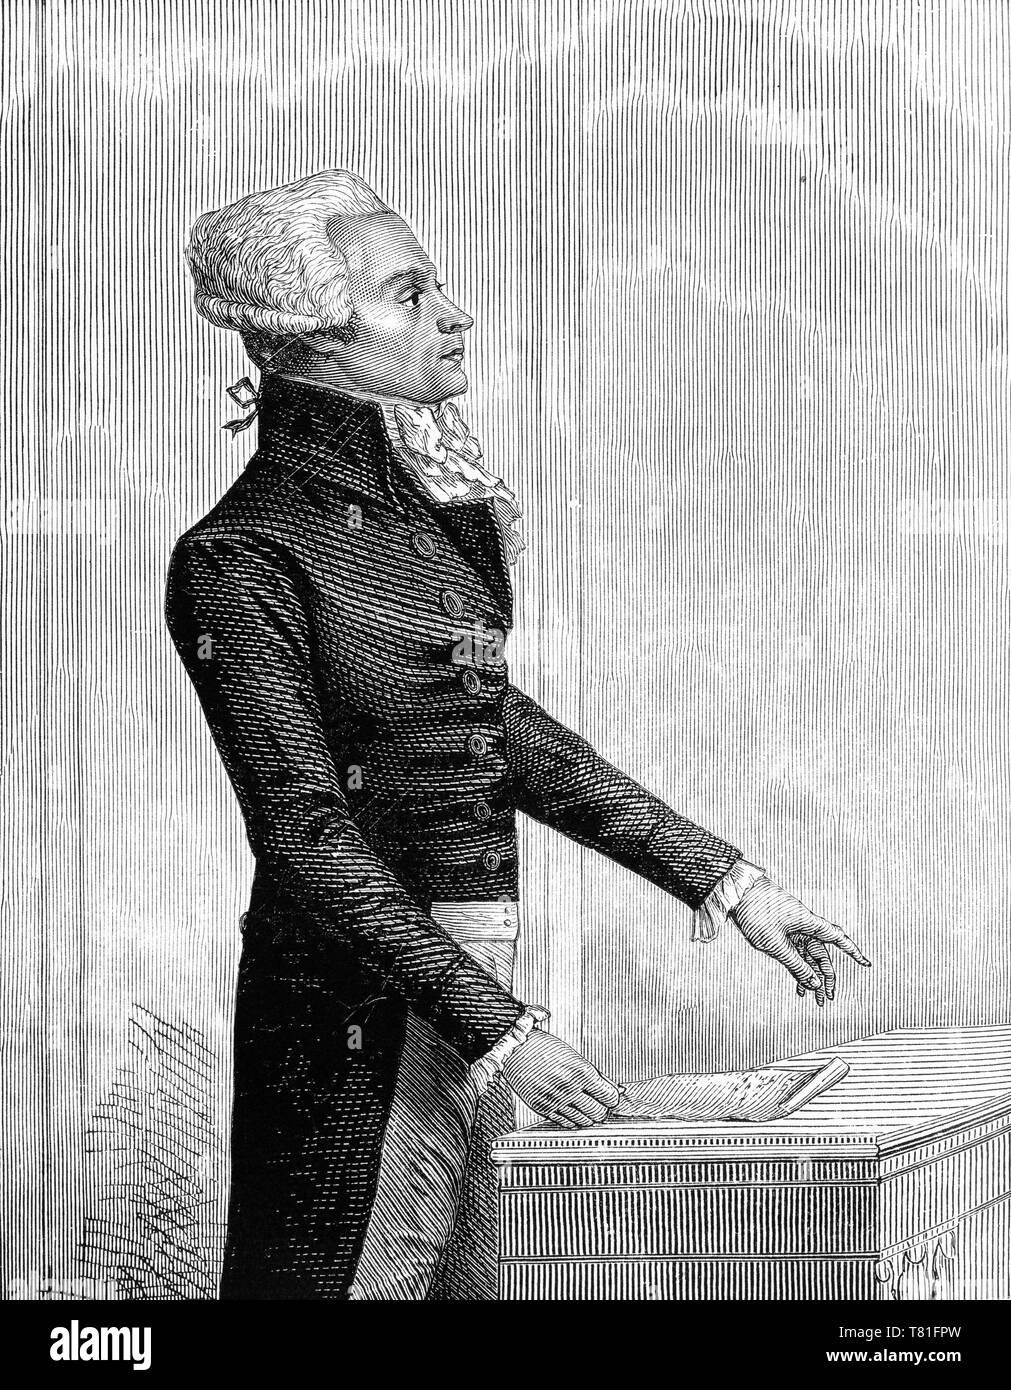 Engraving of Maximilien François Marie Isidore de Robespierre (1758 – 1794) French lawyer and politician, and one of the best known and most influential figures associated with the French Revolution. He too was eventually guillotined. - Stock Image